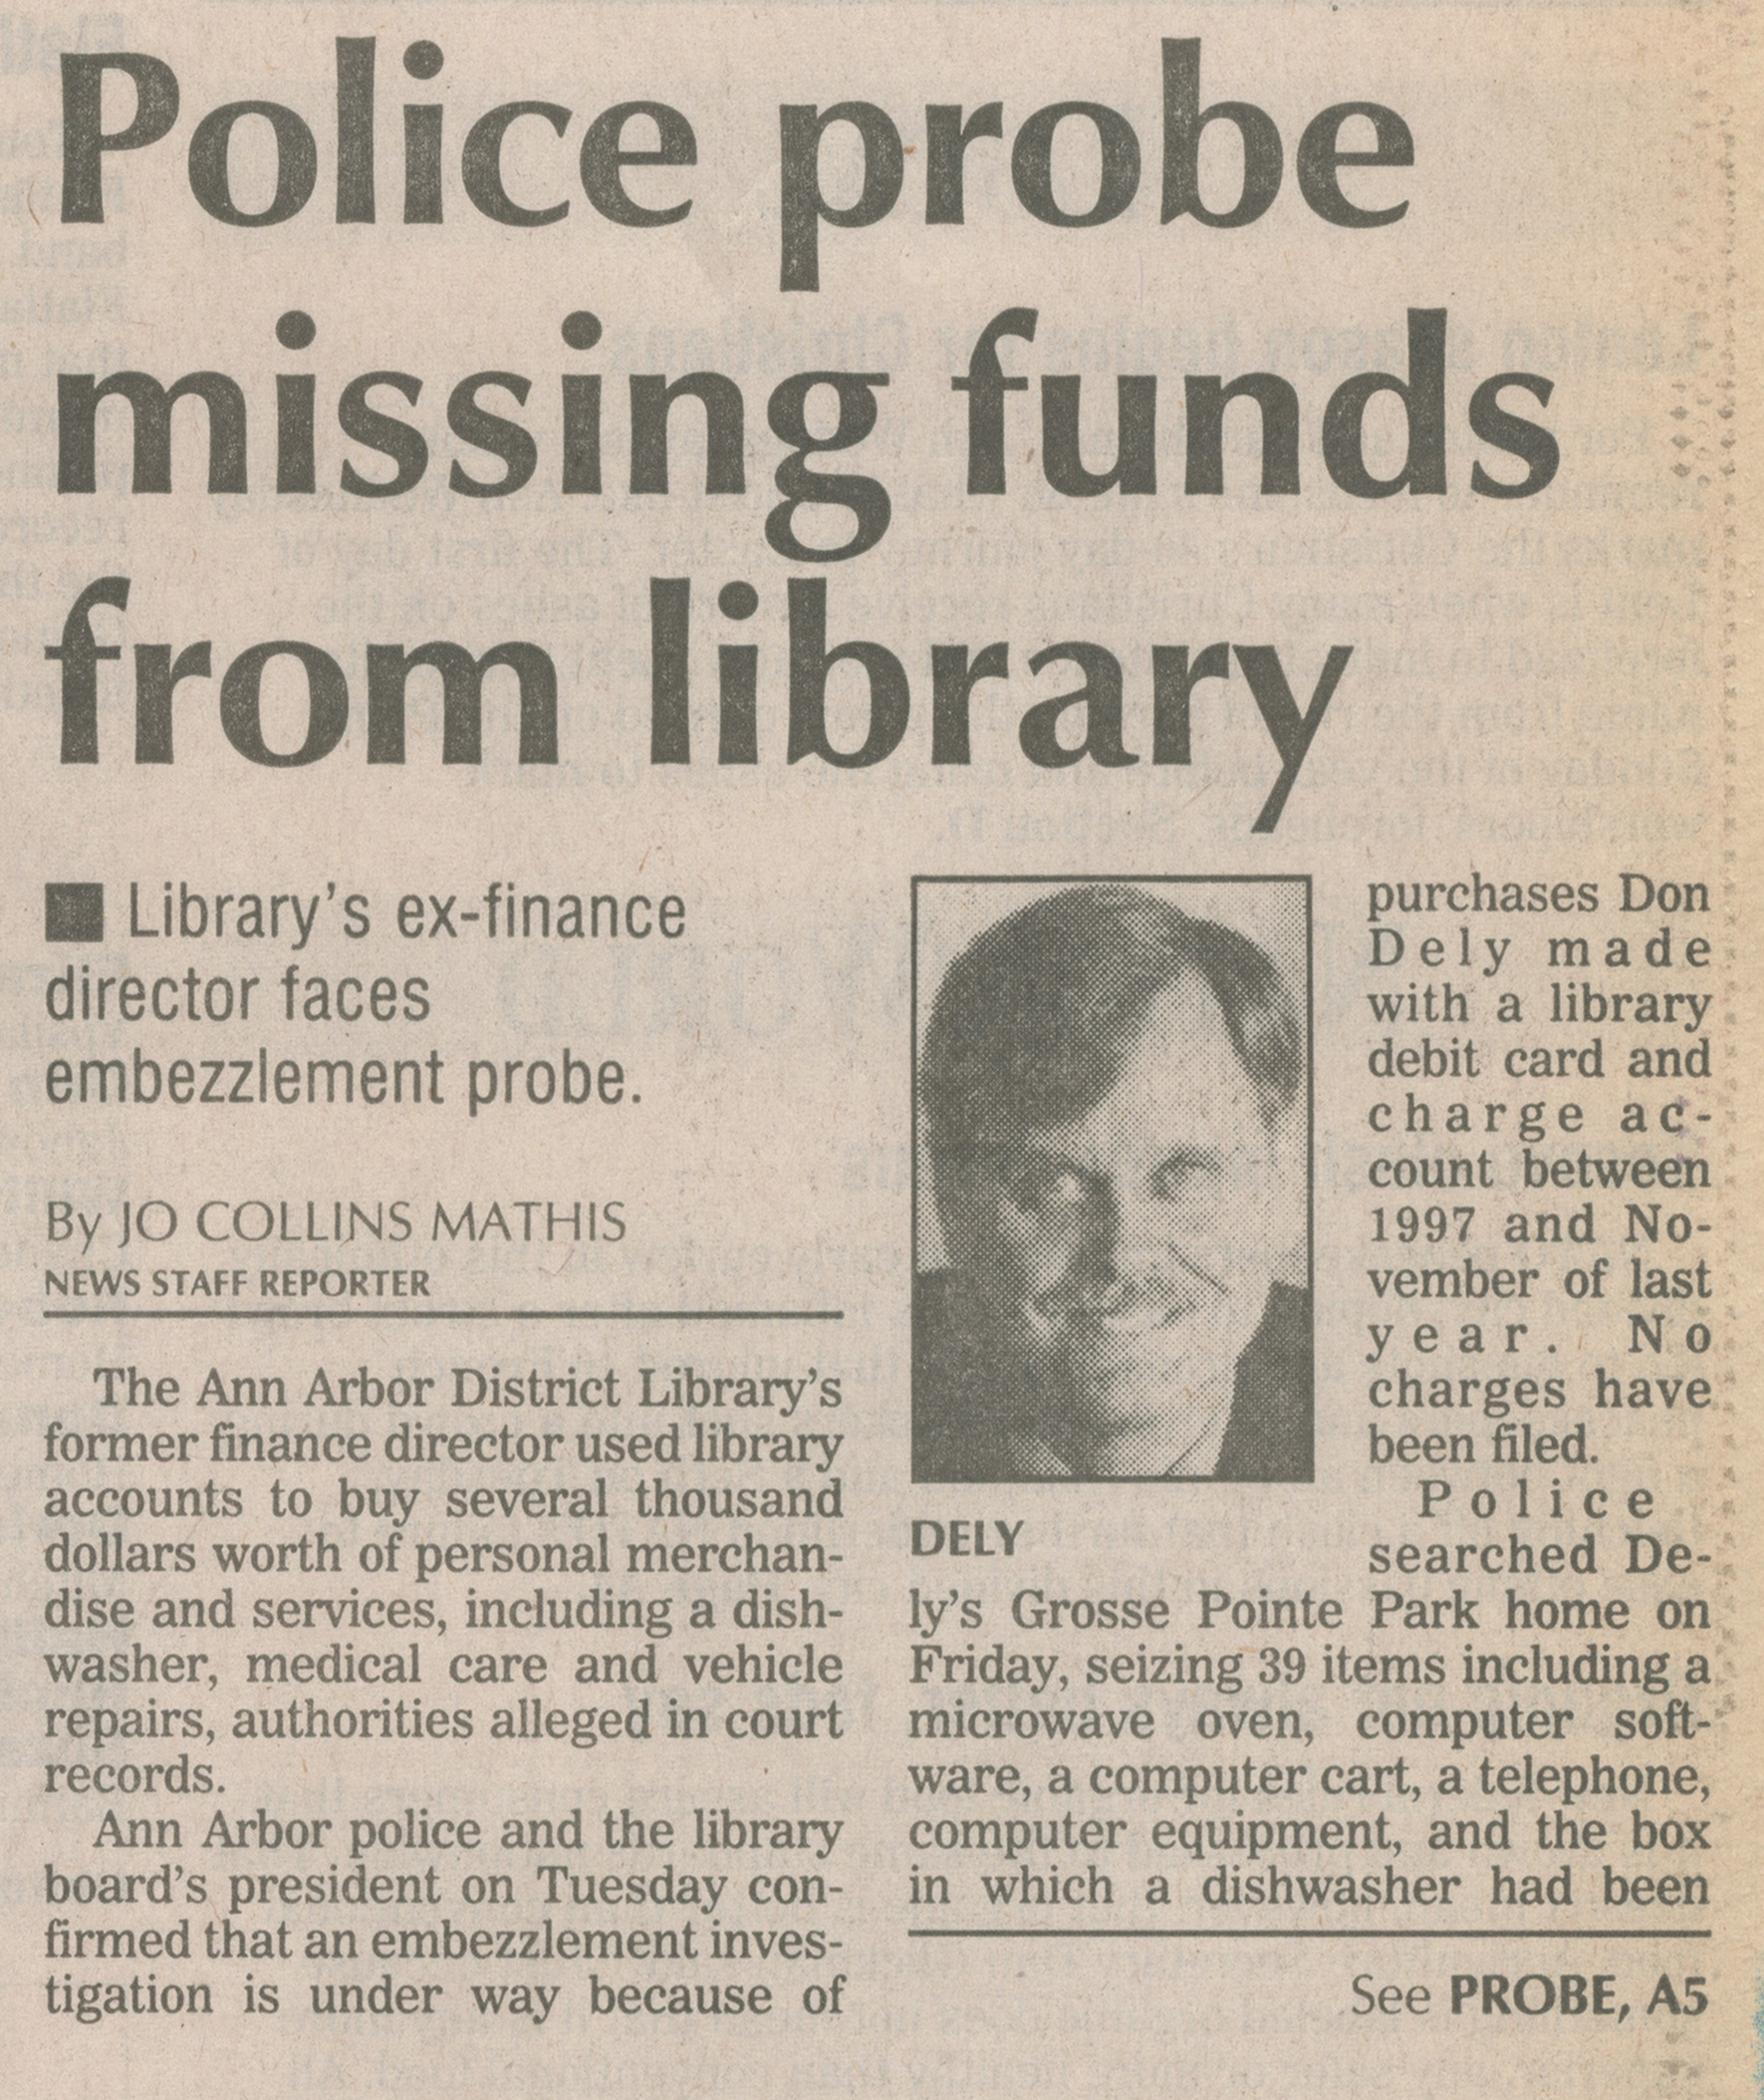 Police Probe Missing Funds From Library image